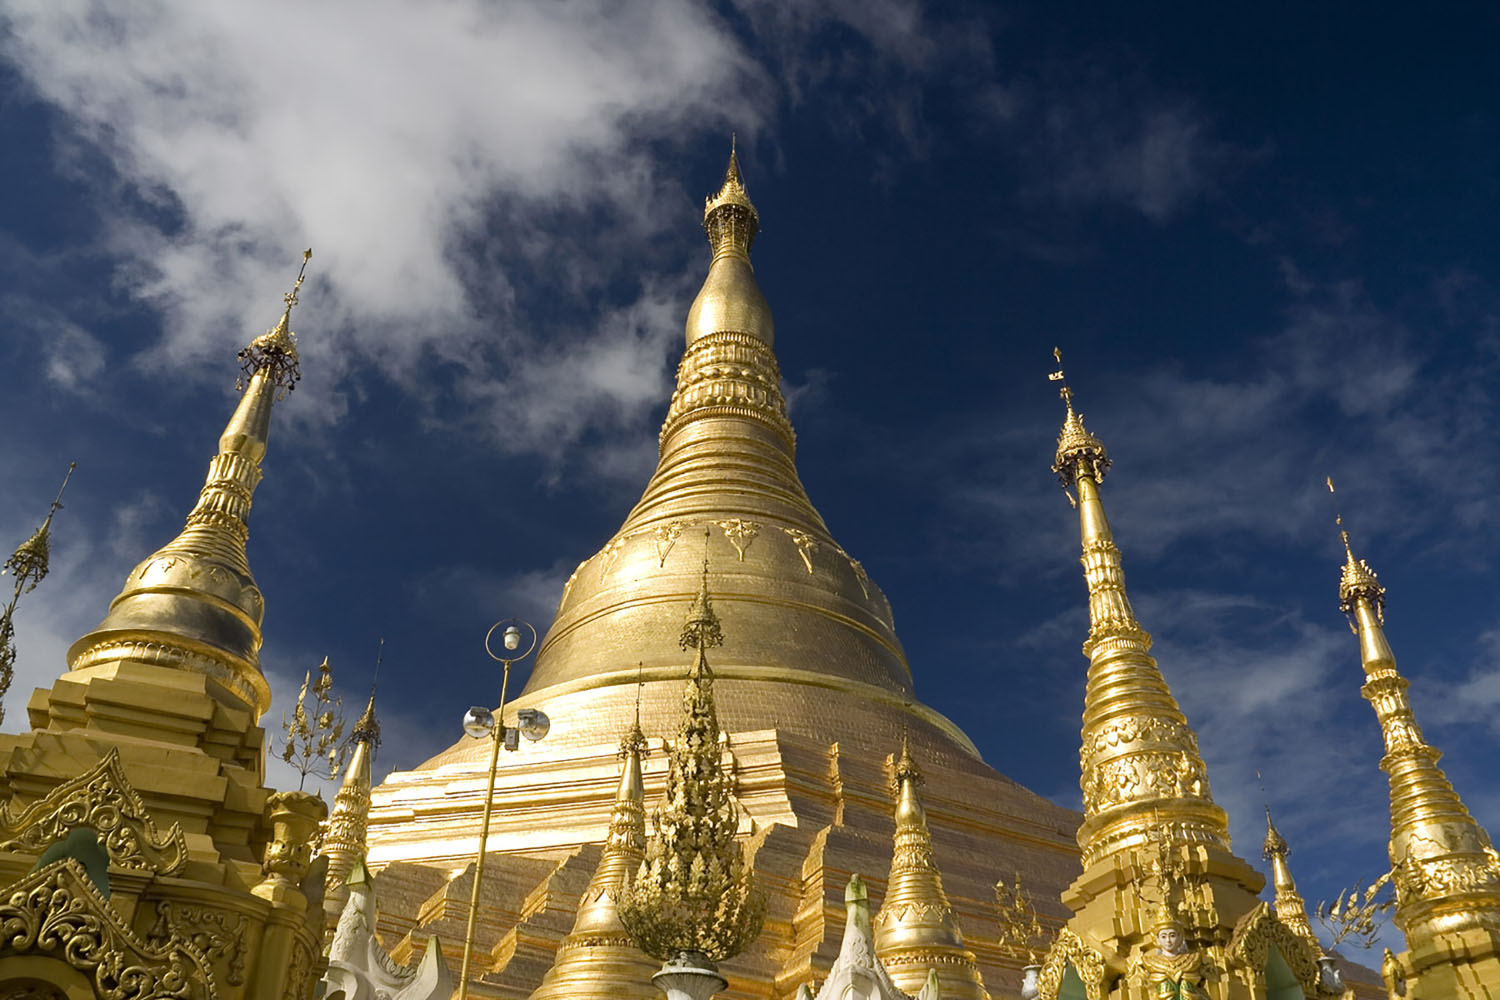 .Explore one of the most famous Buddhist temples, Shwedagon Pagoda.